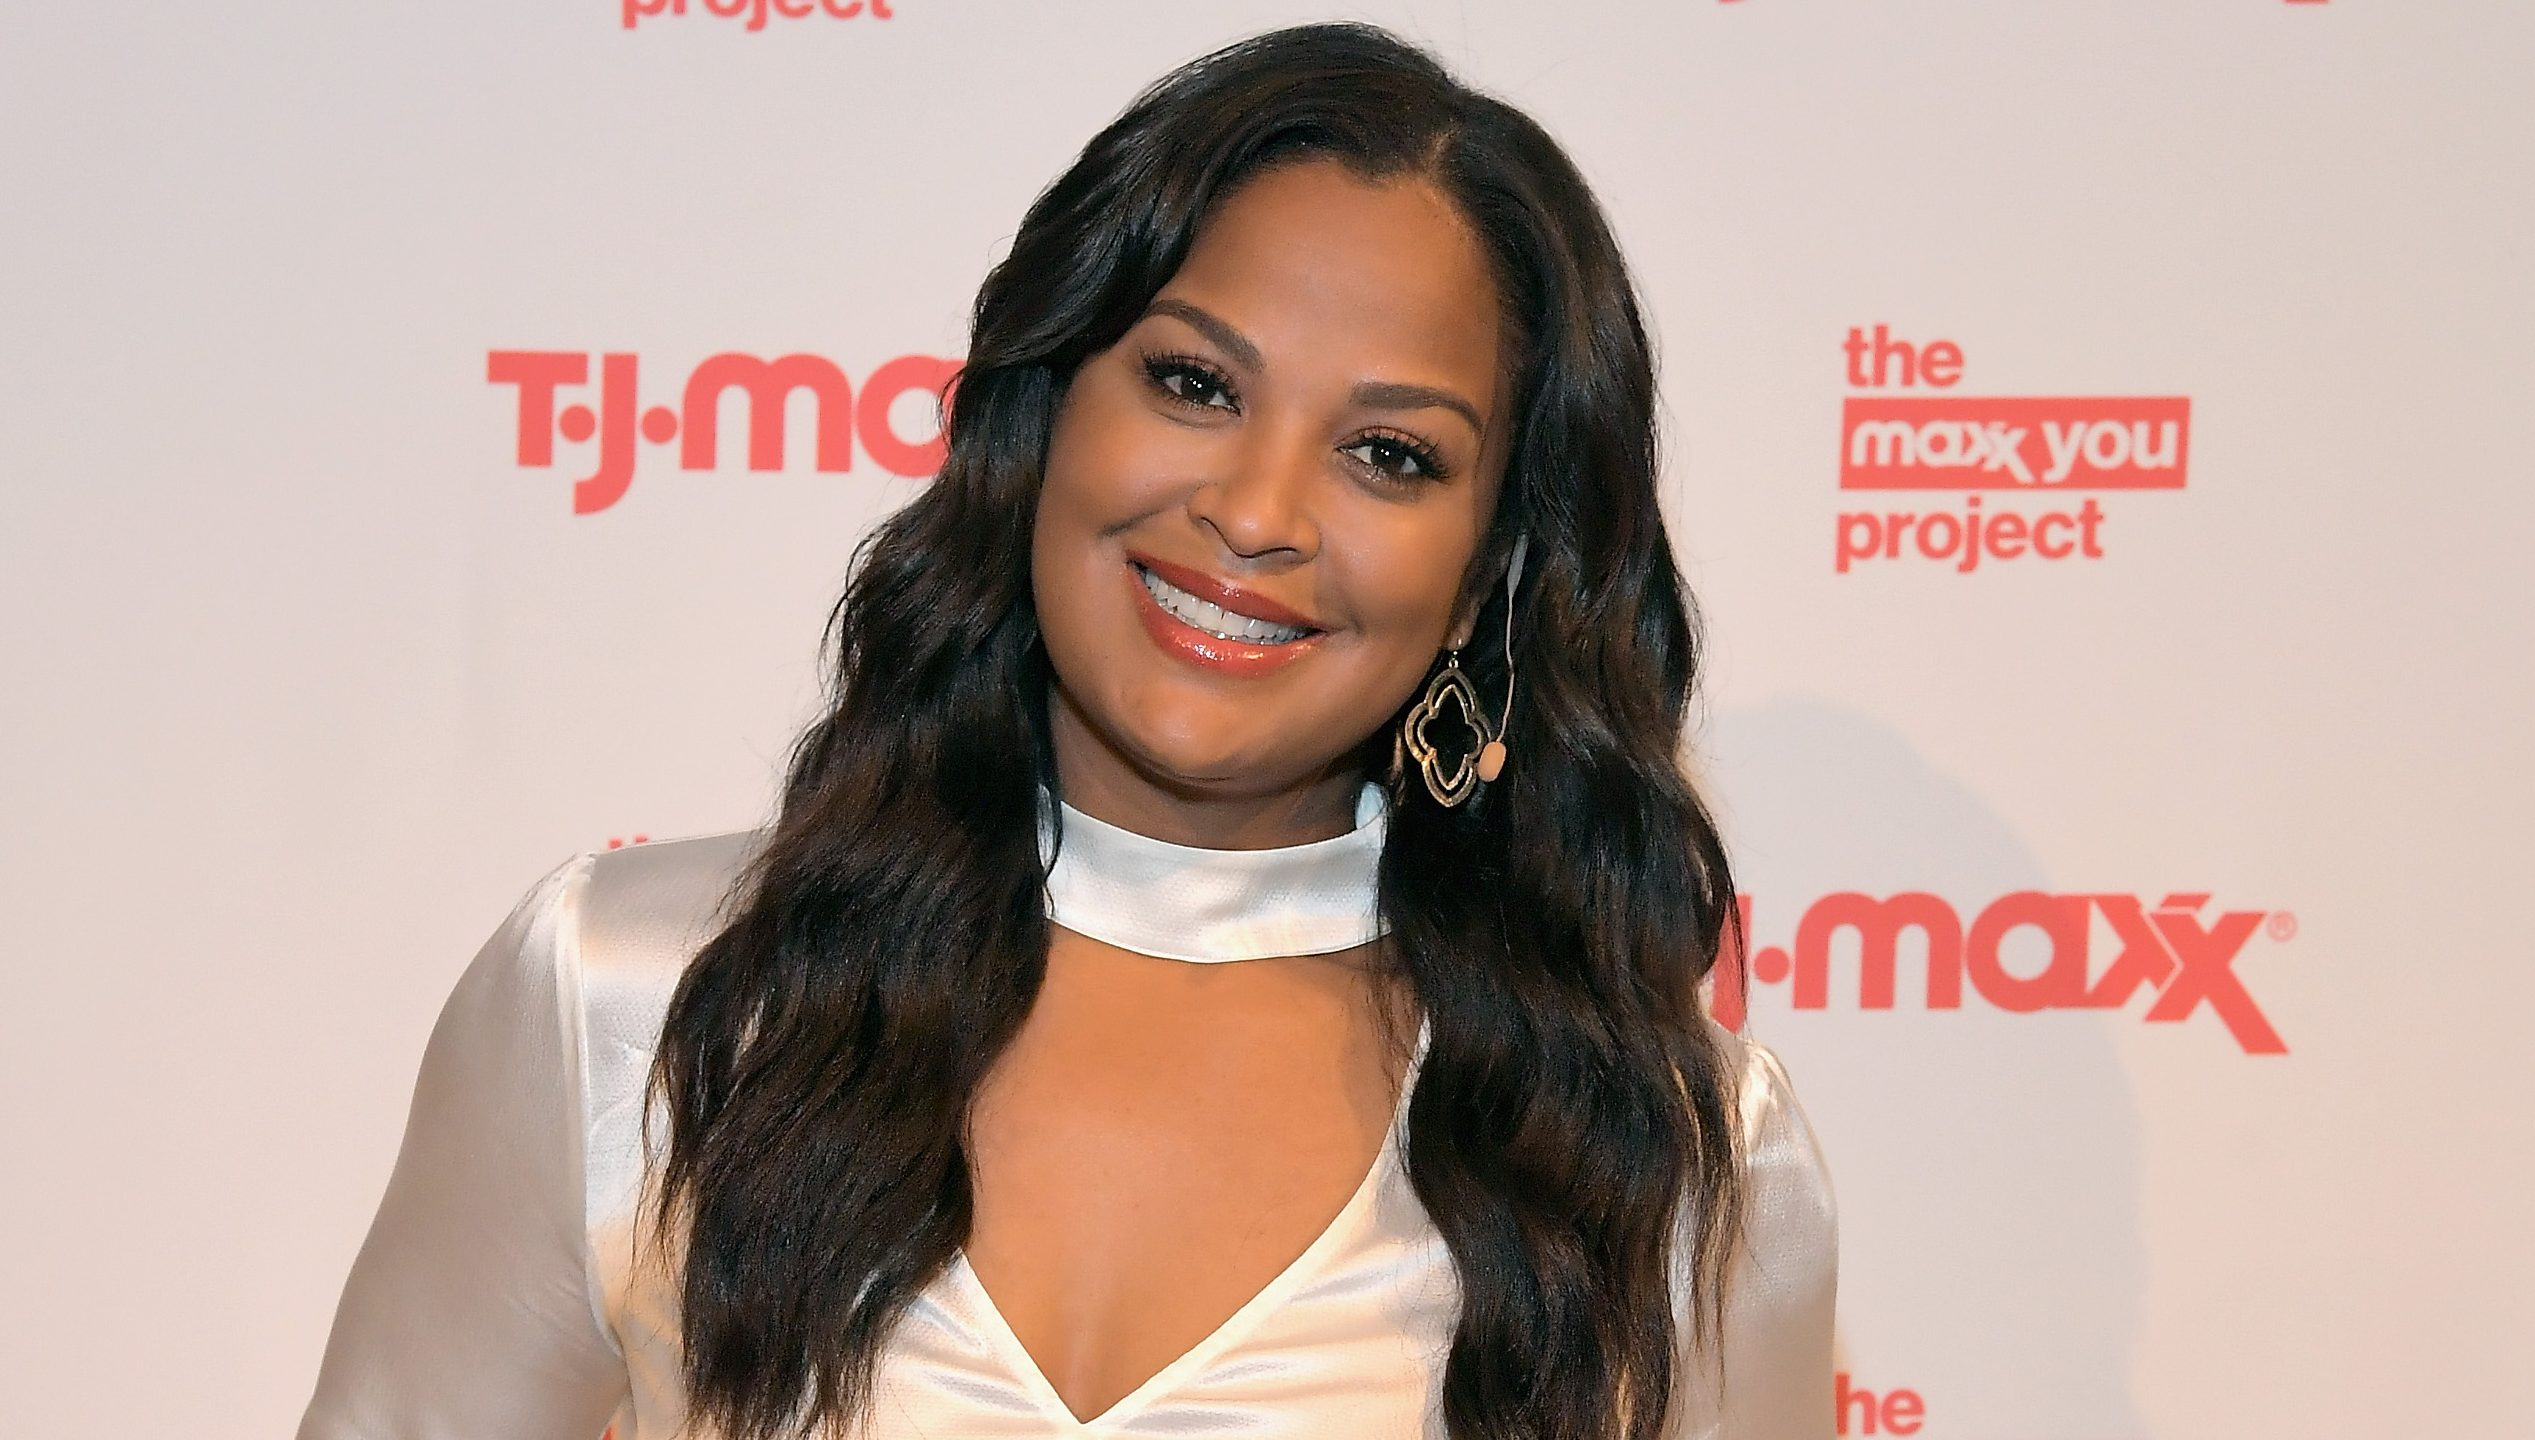 T.J.Maxx and Laila Ali Host The Maxx You Project Workshop